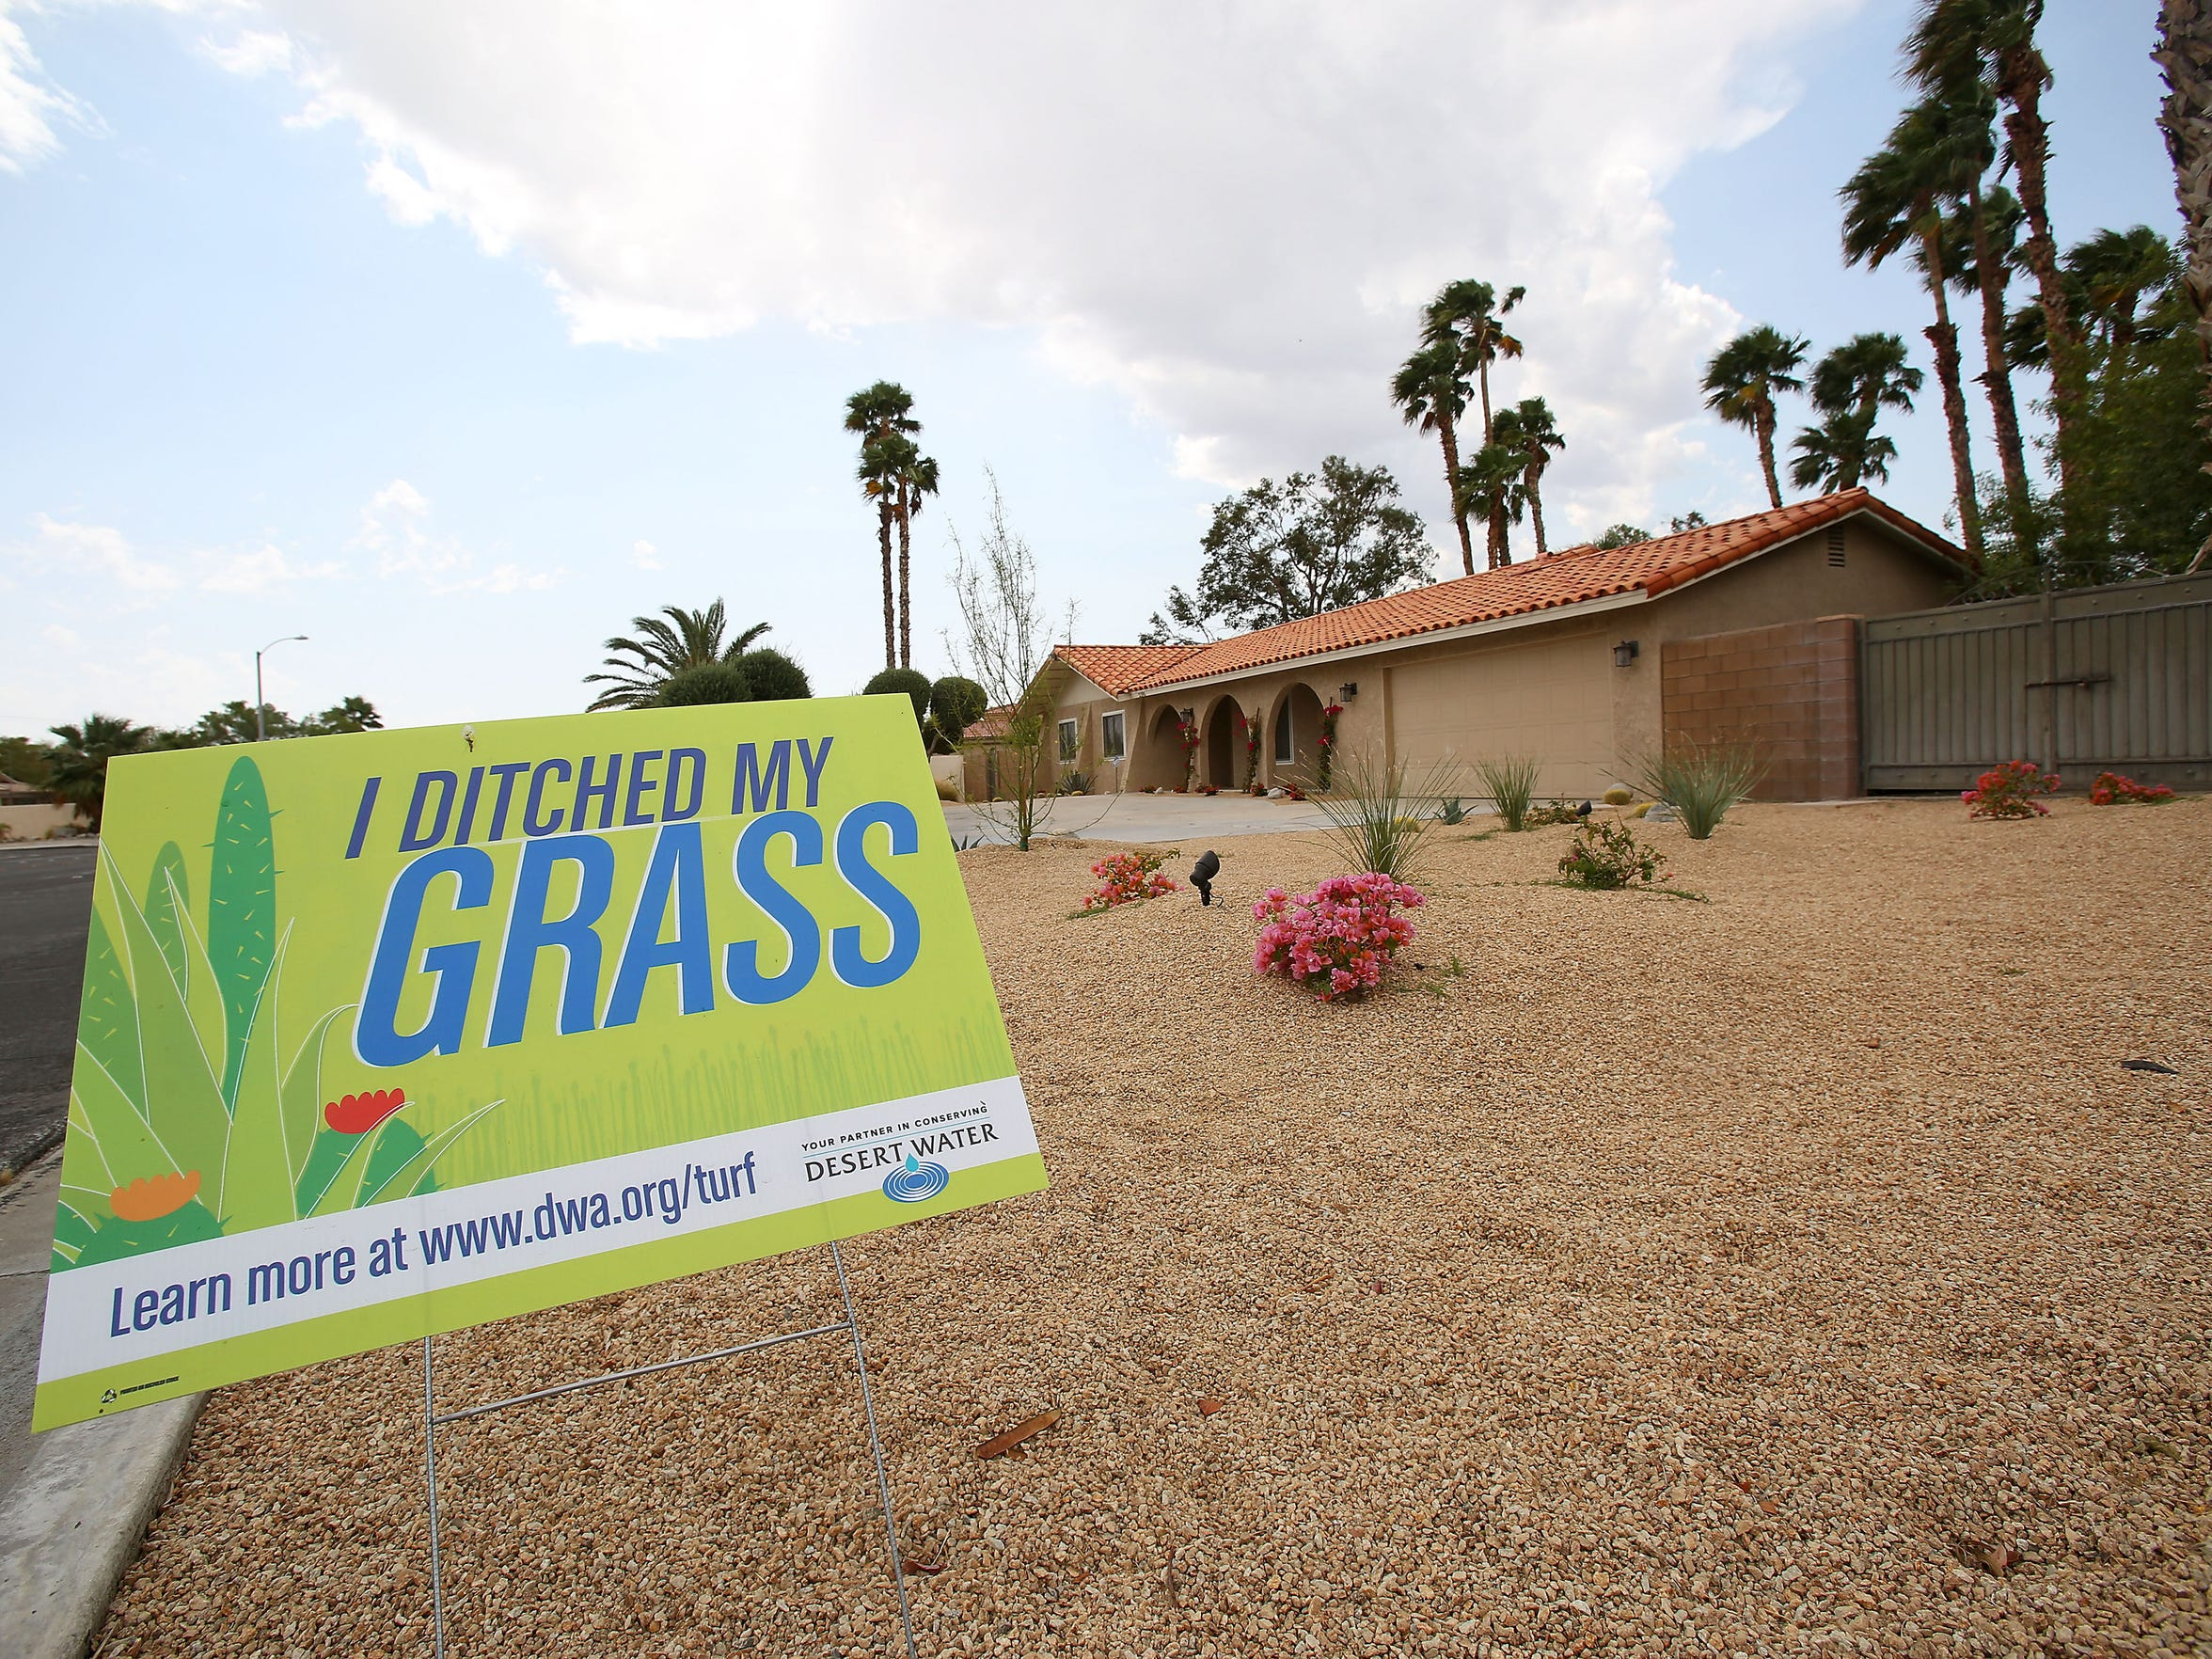 A sign at a home on Racquet Club Dr in Palm Springs